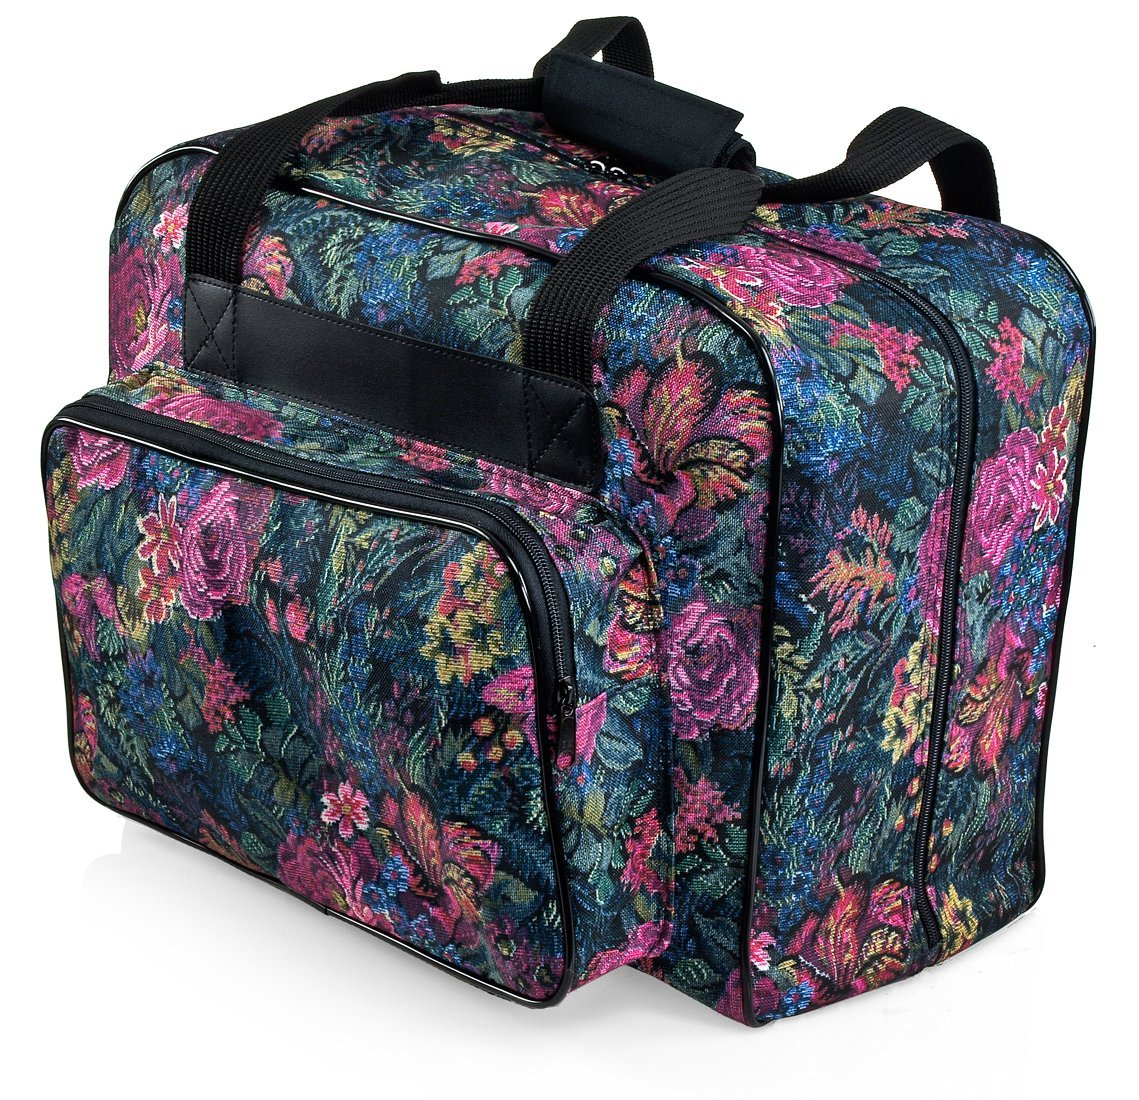 Distinctive Large Floral Pattern Premium Sewing Machine Universal Tote Bag - Walmart.com